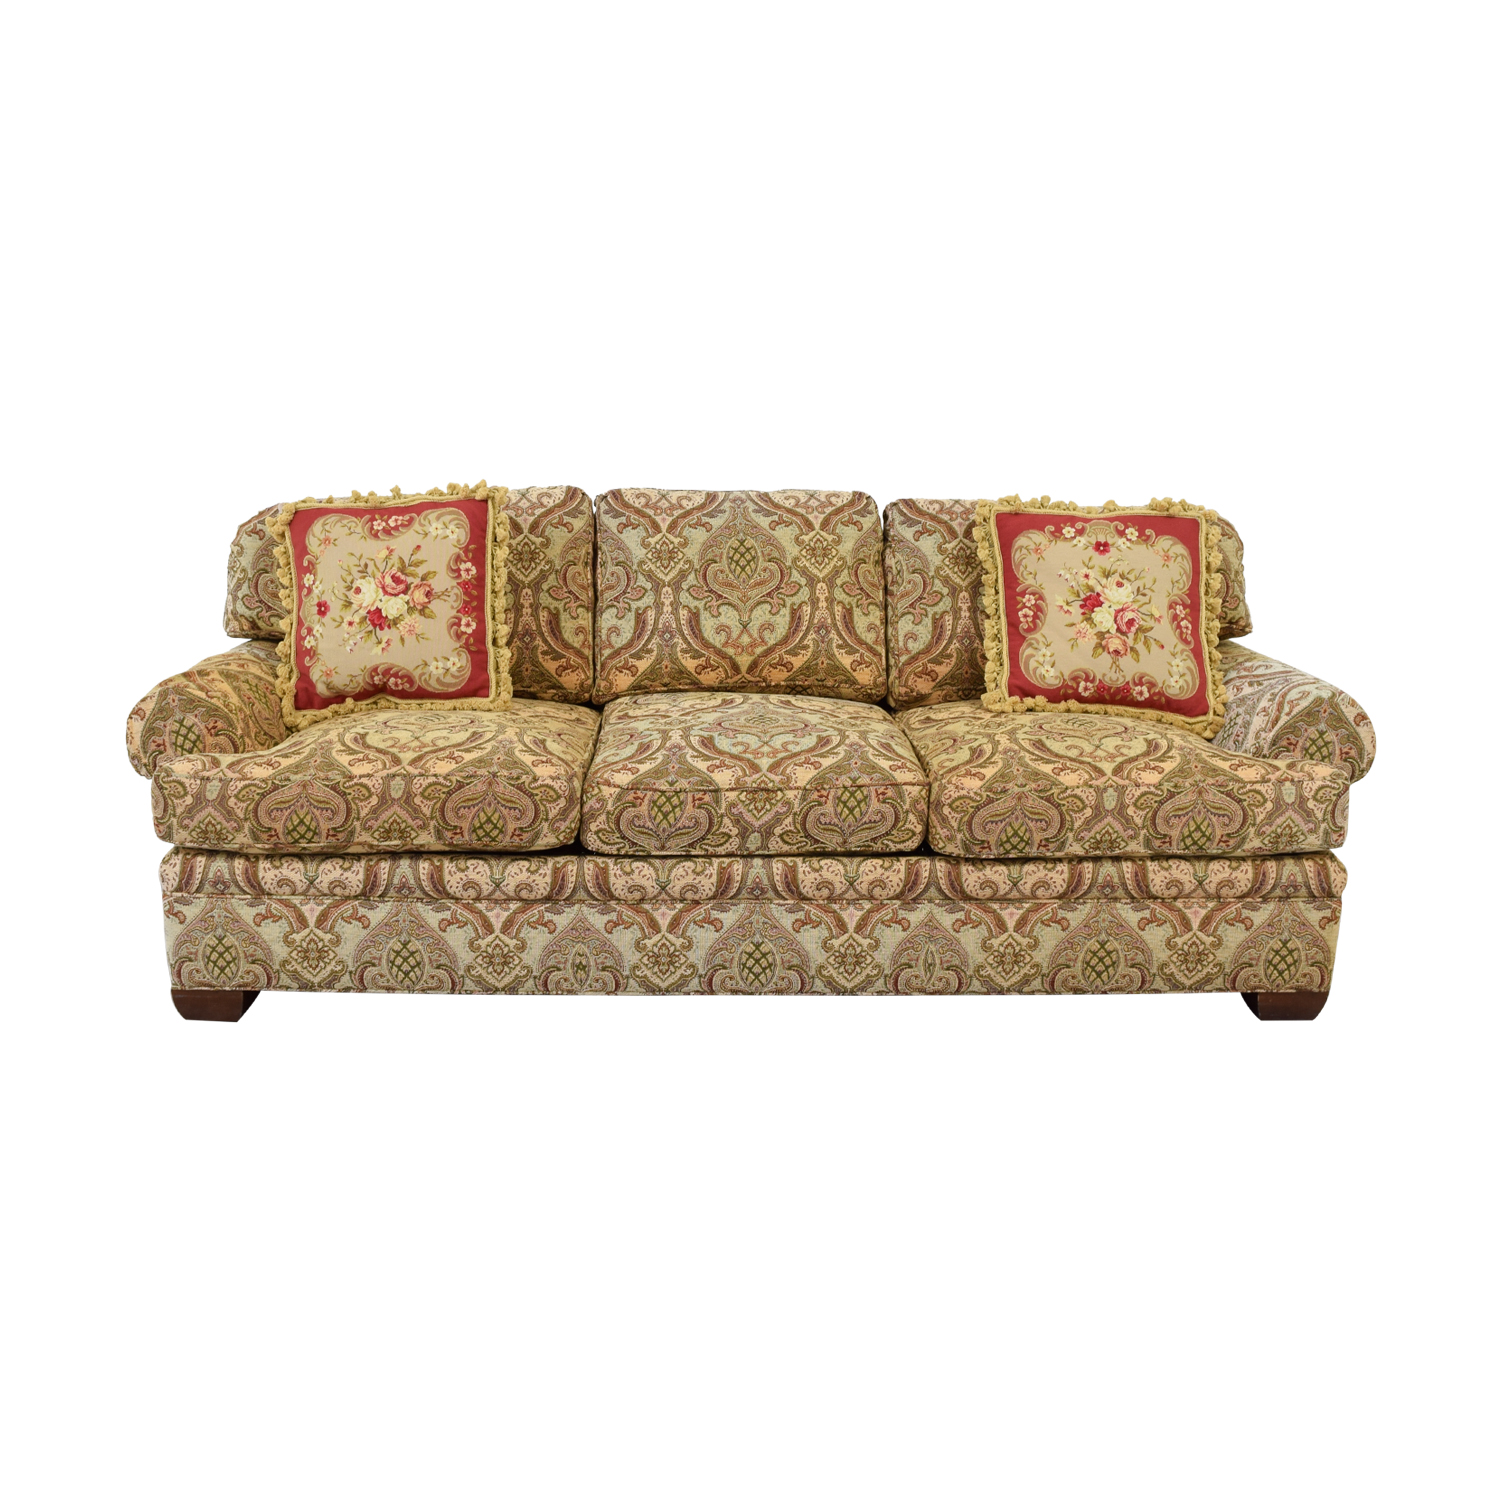 Kravet Kravet Custom Chenille Paisley Three-Cushion Sofa used